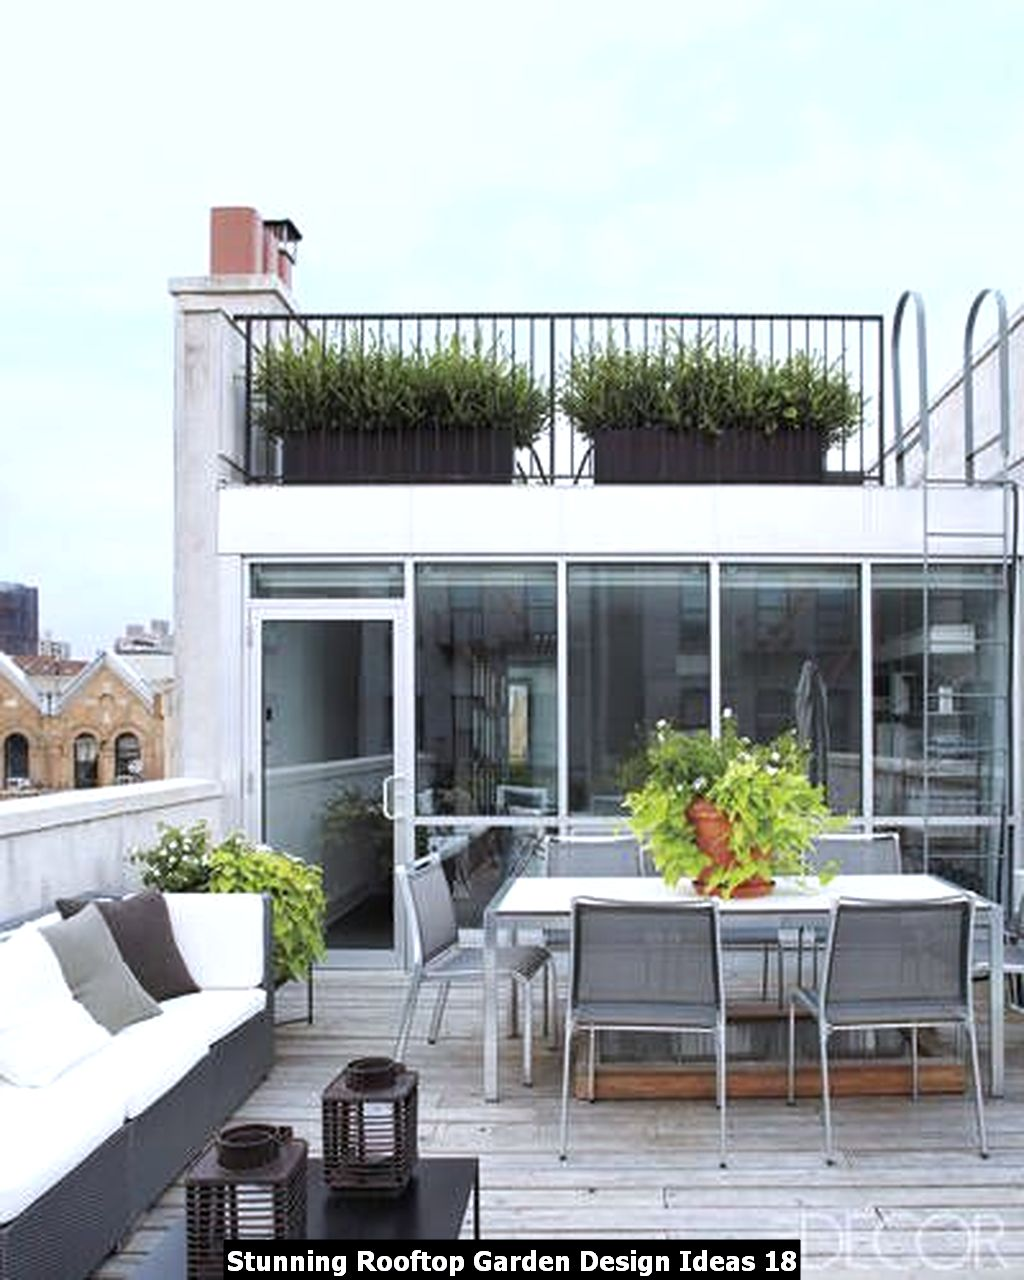 Stunning Rooftop Garden Design Ideas 18